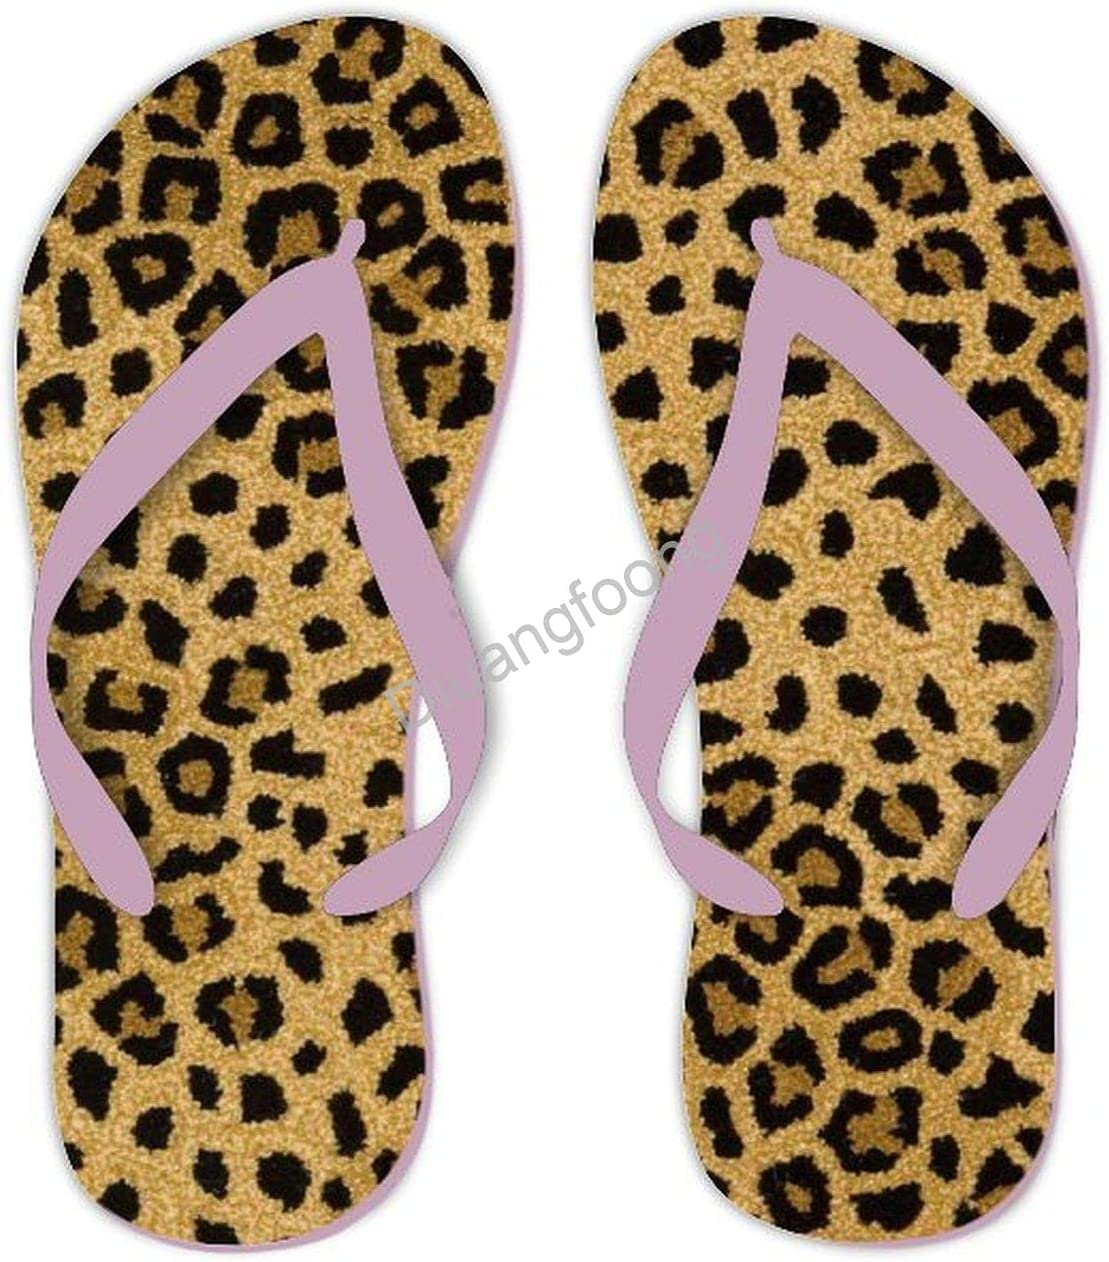 Leopard Flip Flops Comfort Summer Thong Sandals Pretty Sandal For Outdoor Travel Shipping Pink Style1